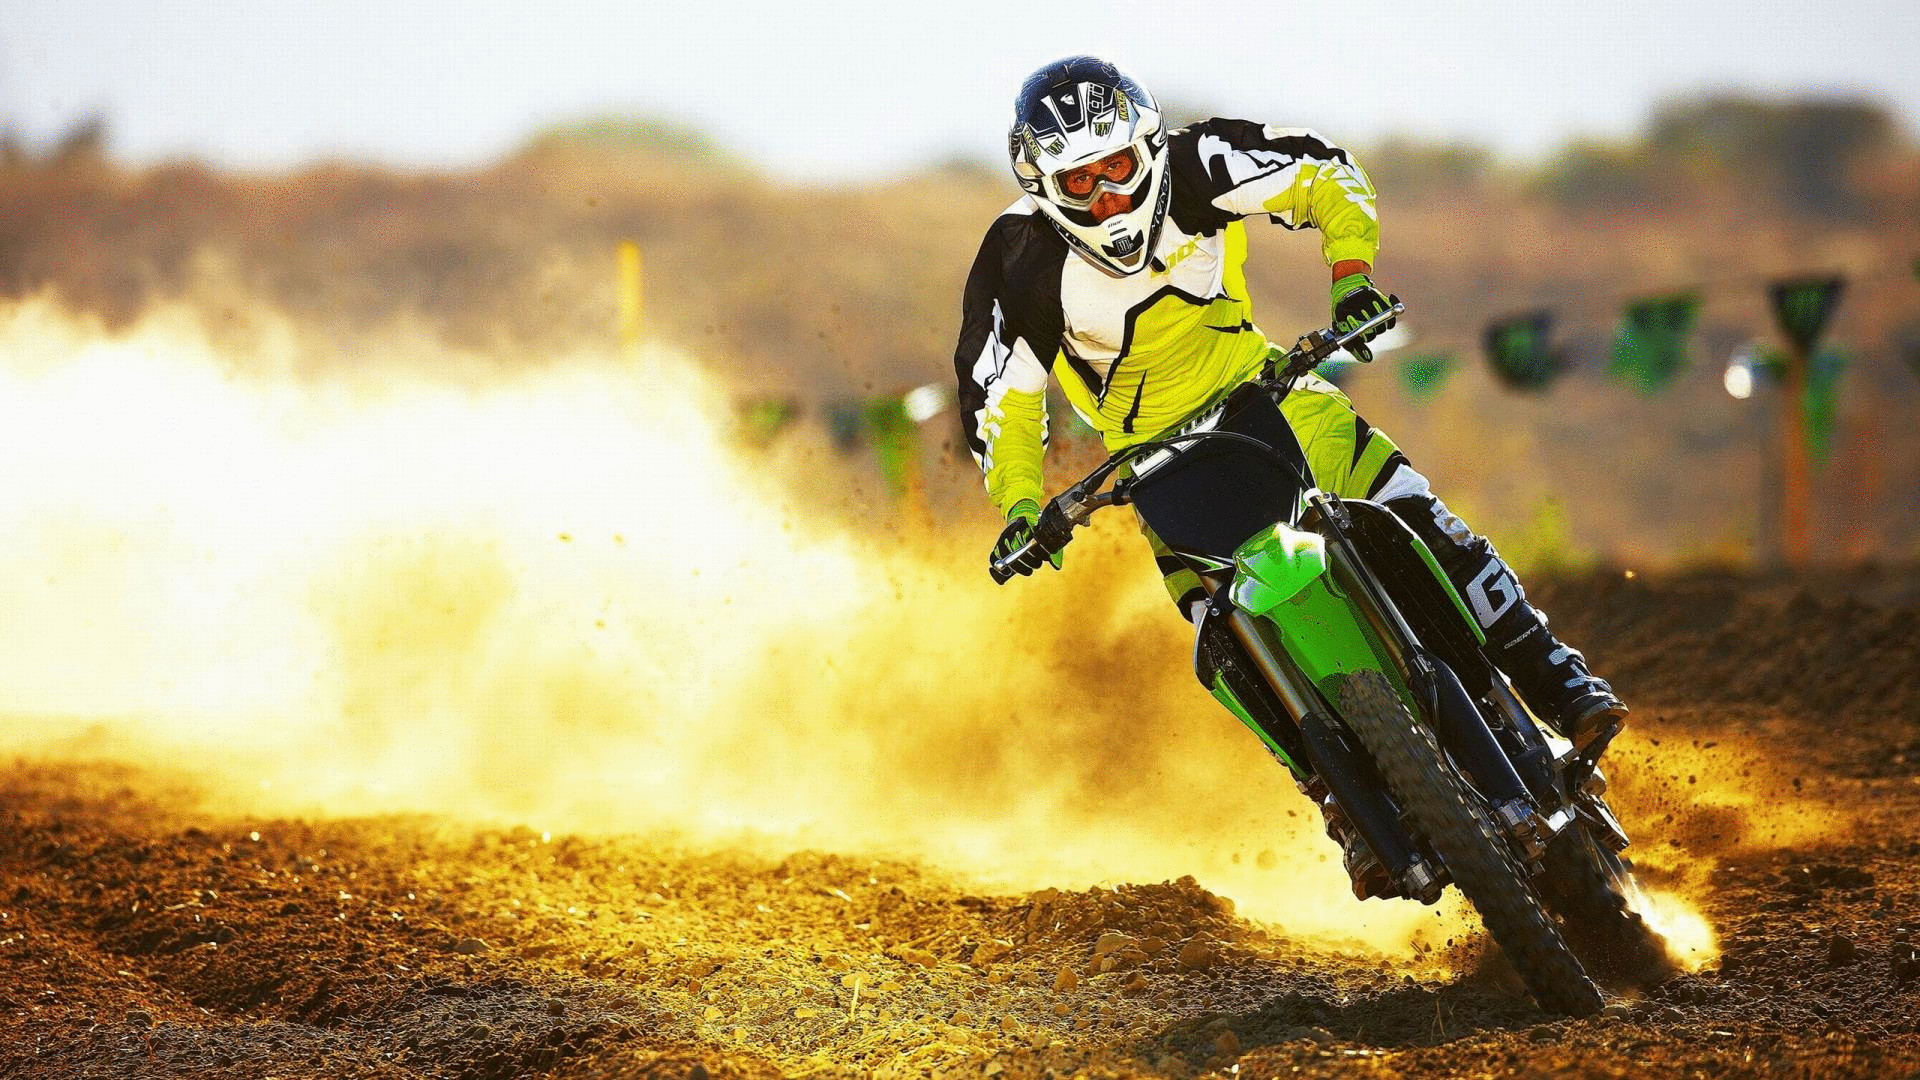 dirt bike wallpaper hd (65+ images)